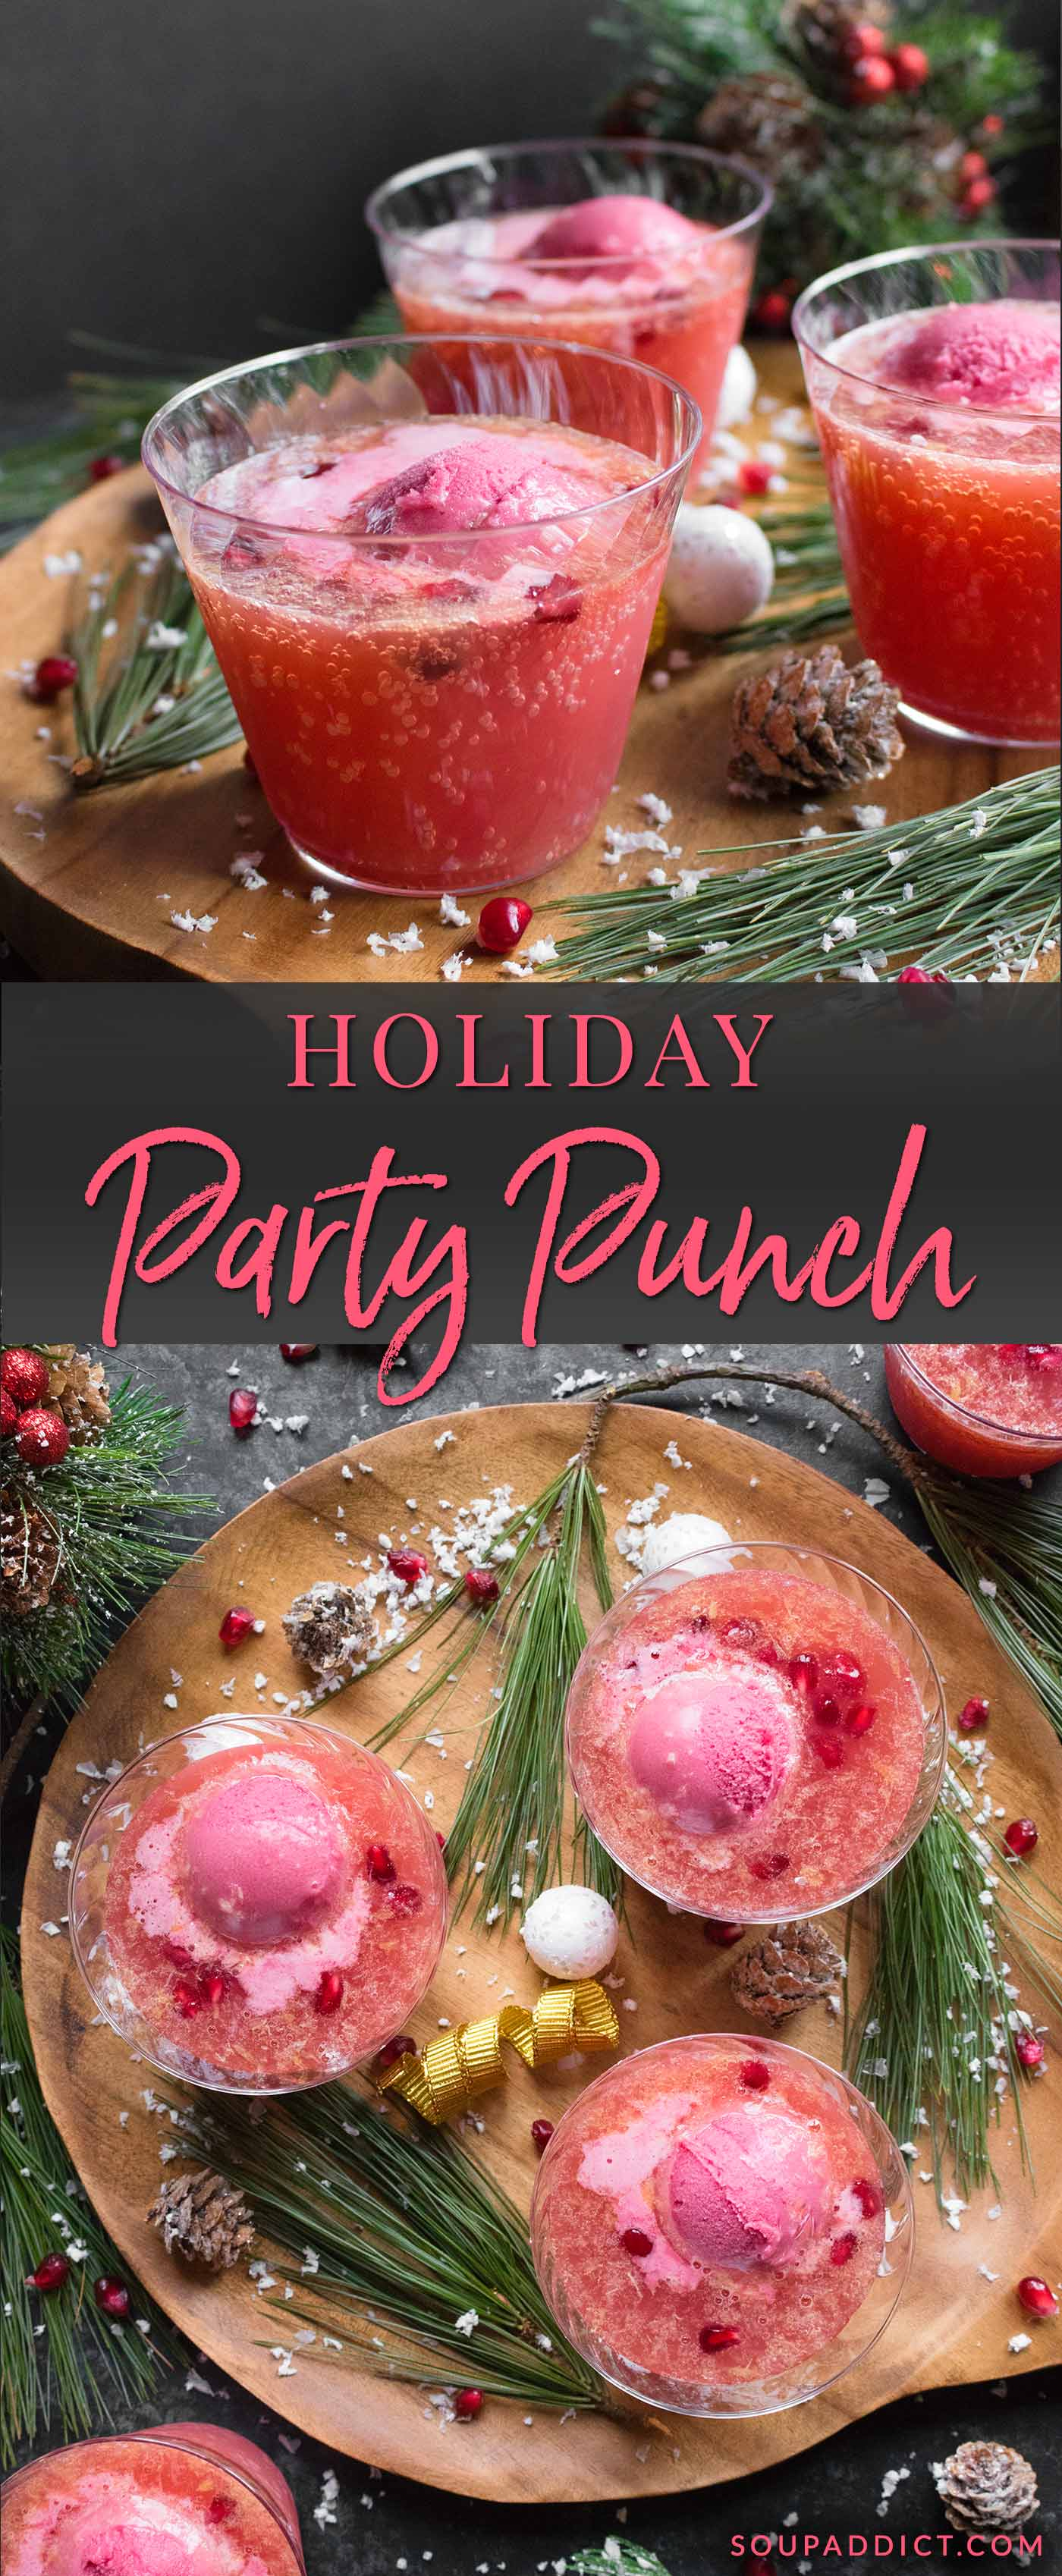 Holiday Party Punch - Recipe at SoupAddict.com